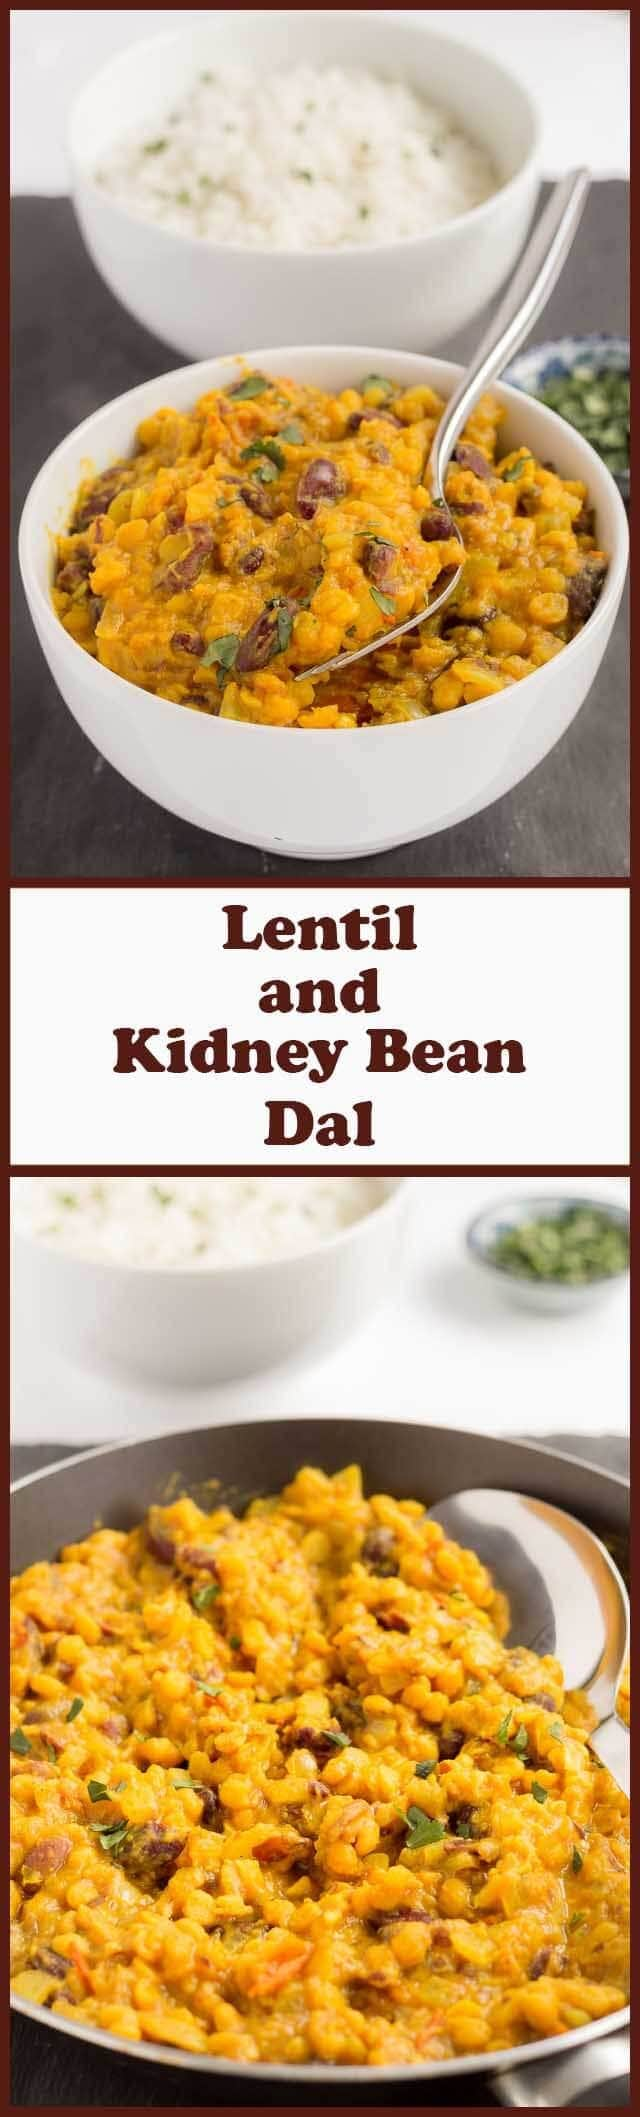 Lentil and kidney bean dal is a delicious vegan red kidney bean curry. It's a perfect quick healthy meal to suit anyone looking for a really filling curry.